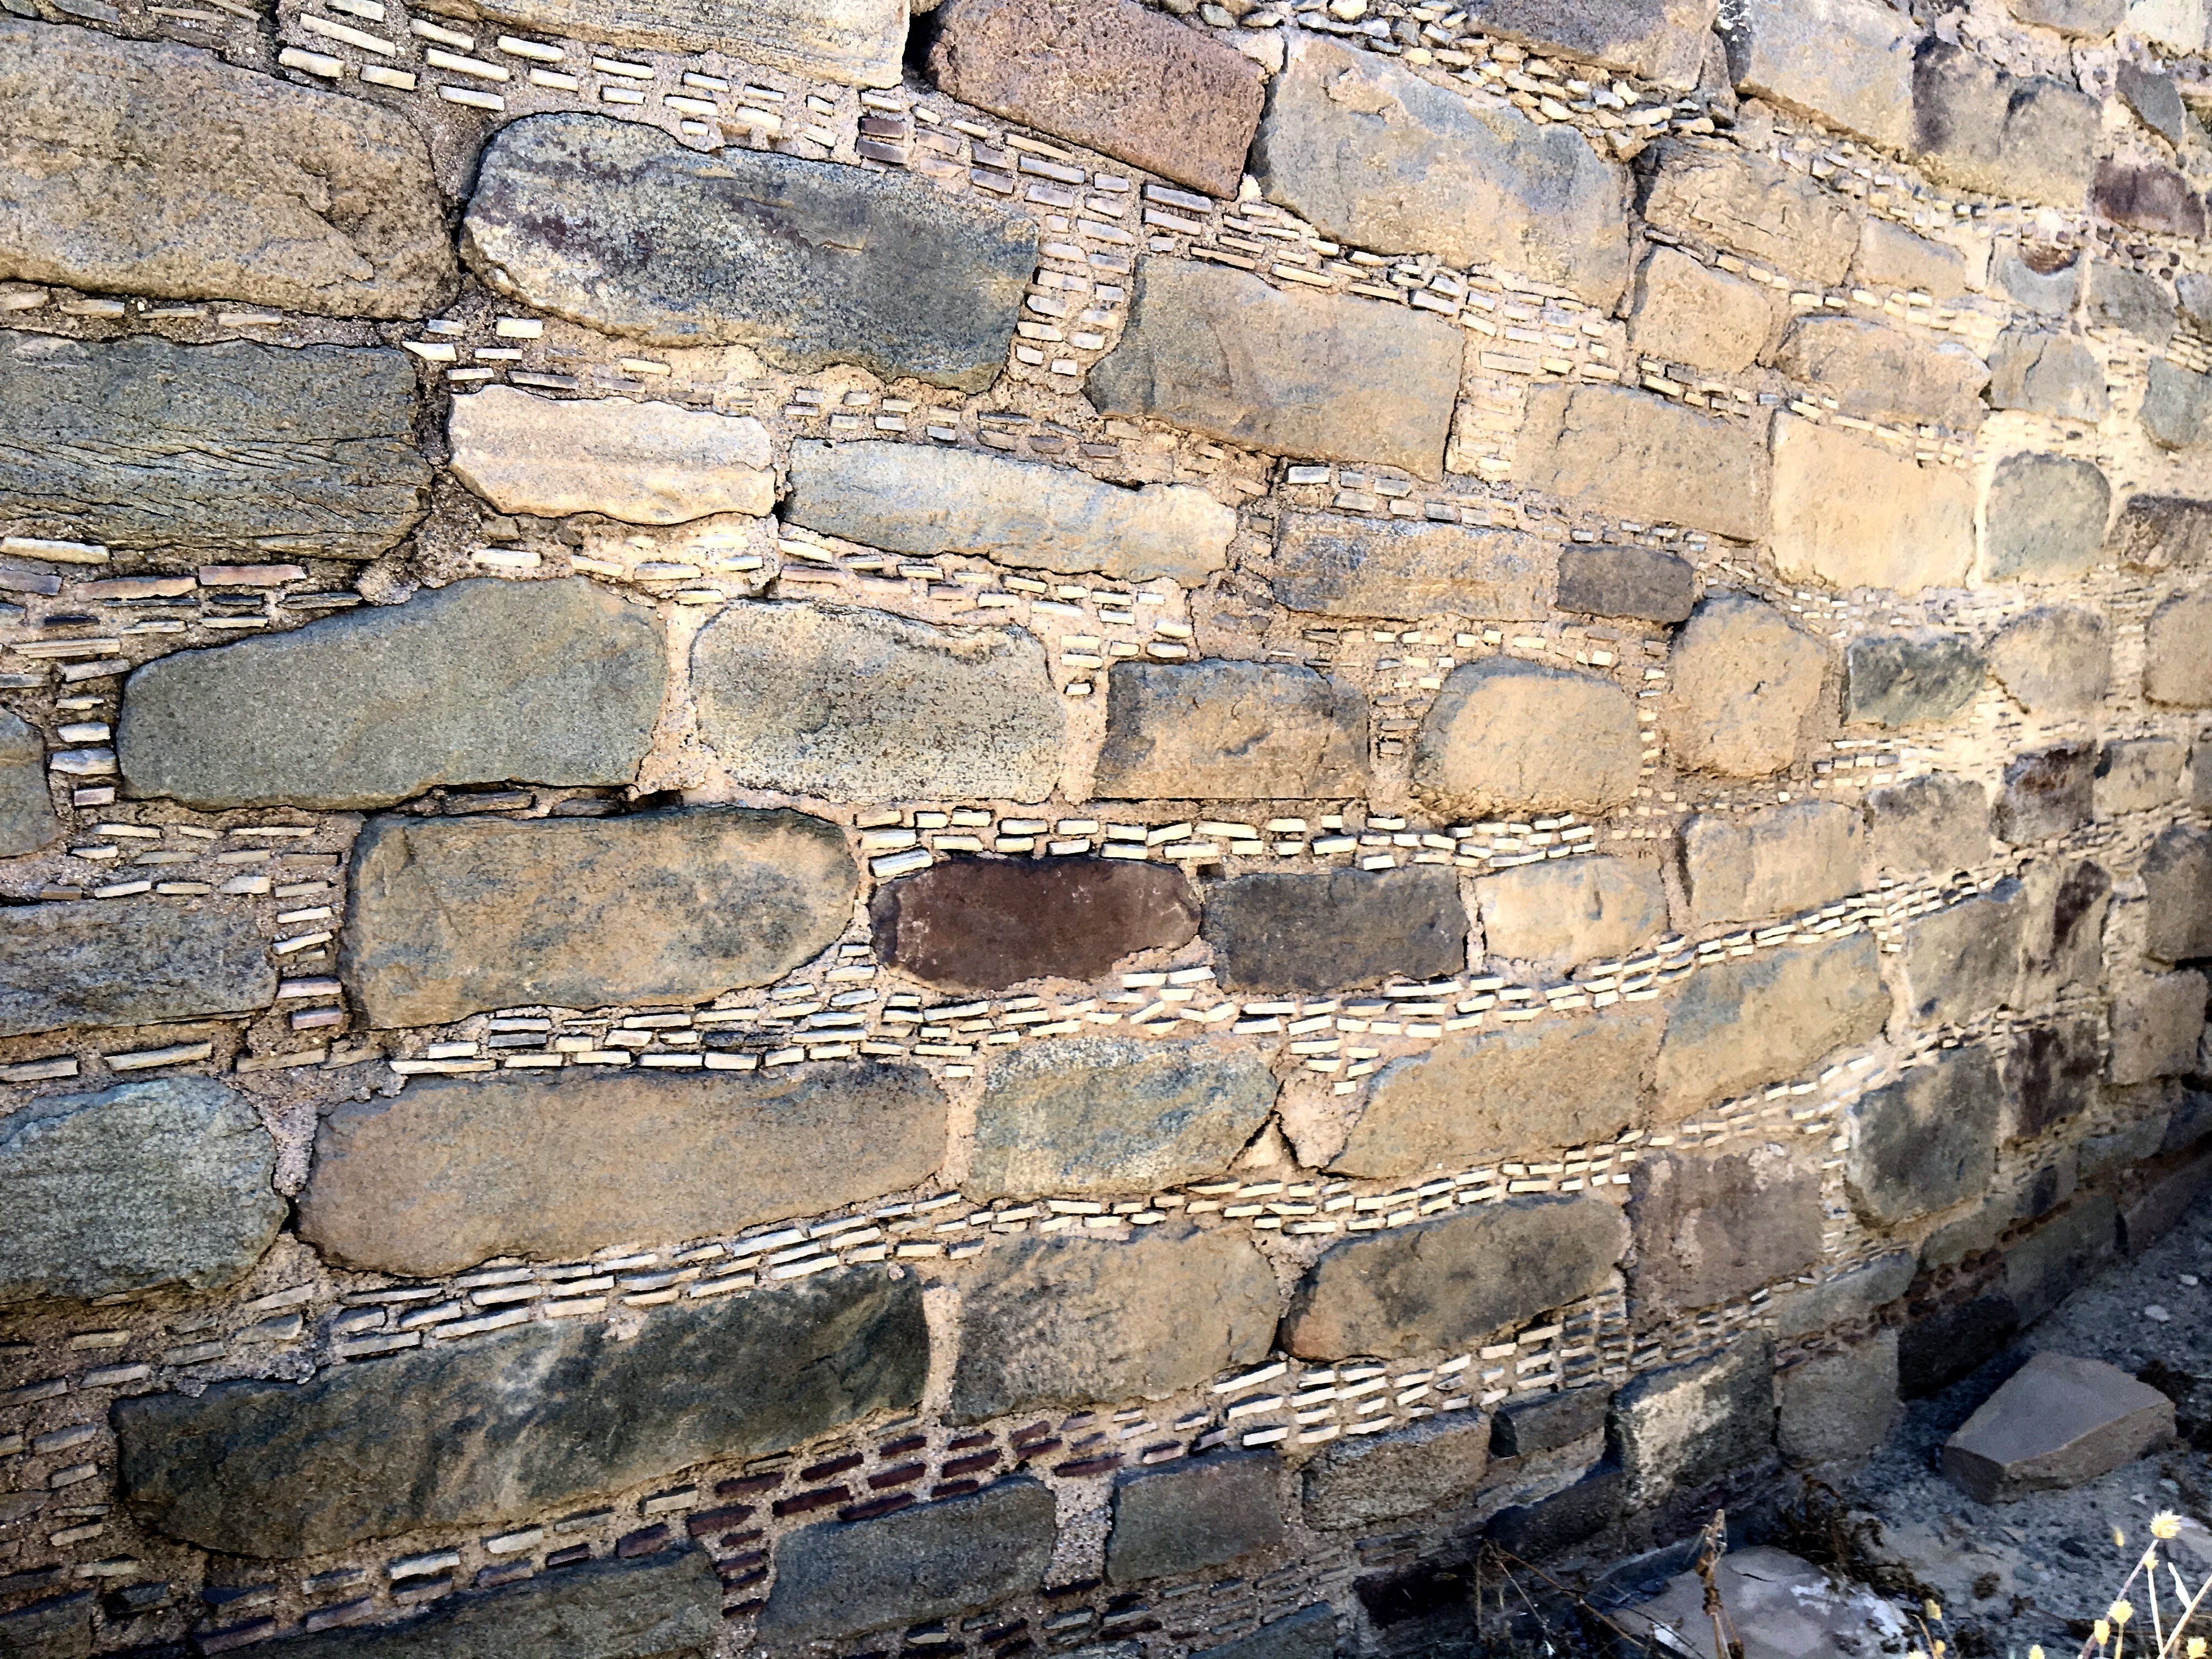 The unplastered walls in the Salmon Ruins complex show construction details left by highly-skilled stoneworkers.